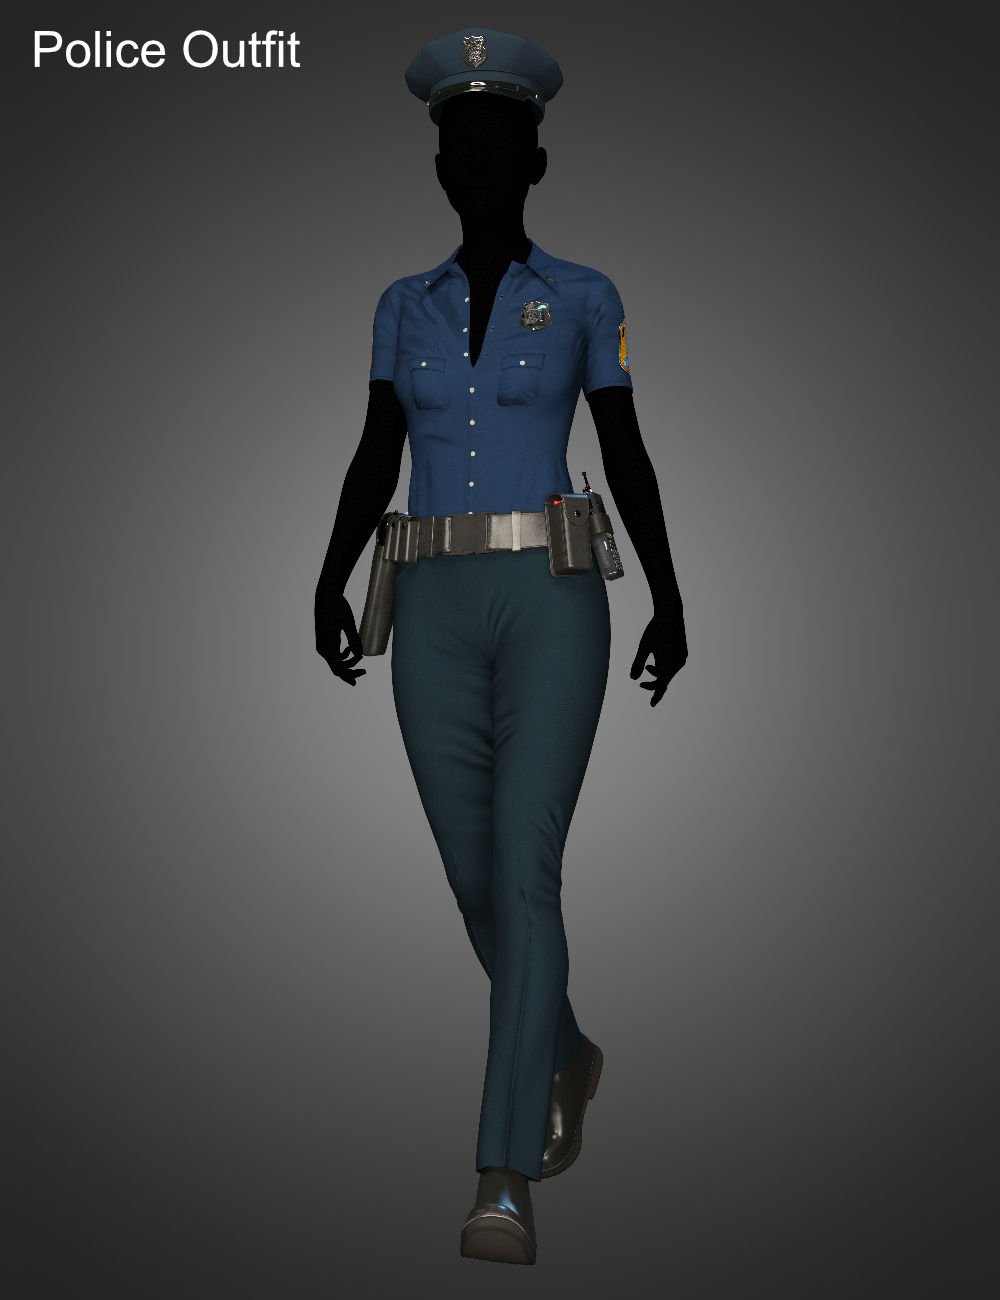 FG Police Woman Outfit for Genesis 8 Female(s) by: Fugazi1968Ironman, 3D Models by Daz 3D